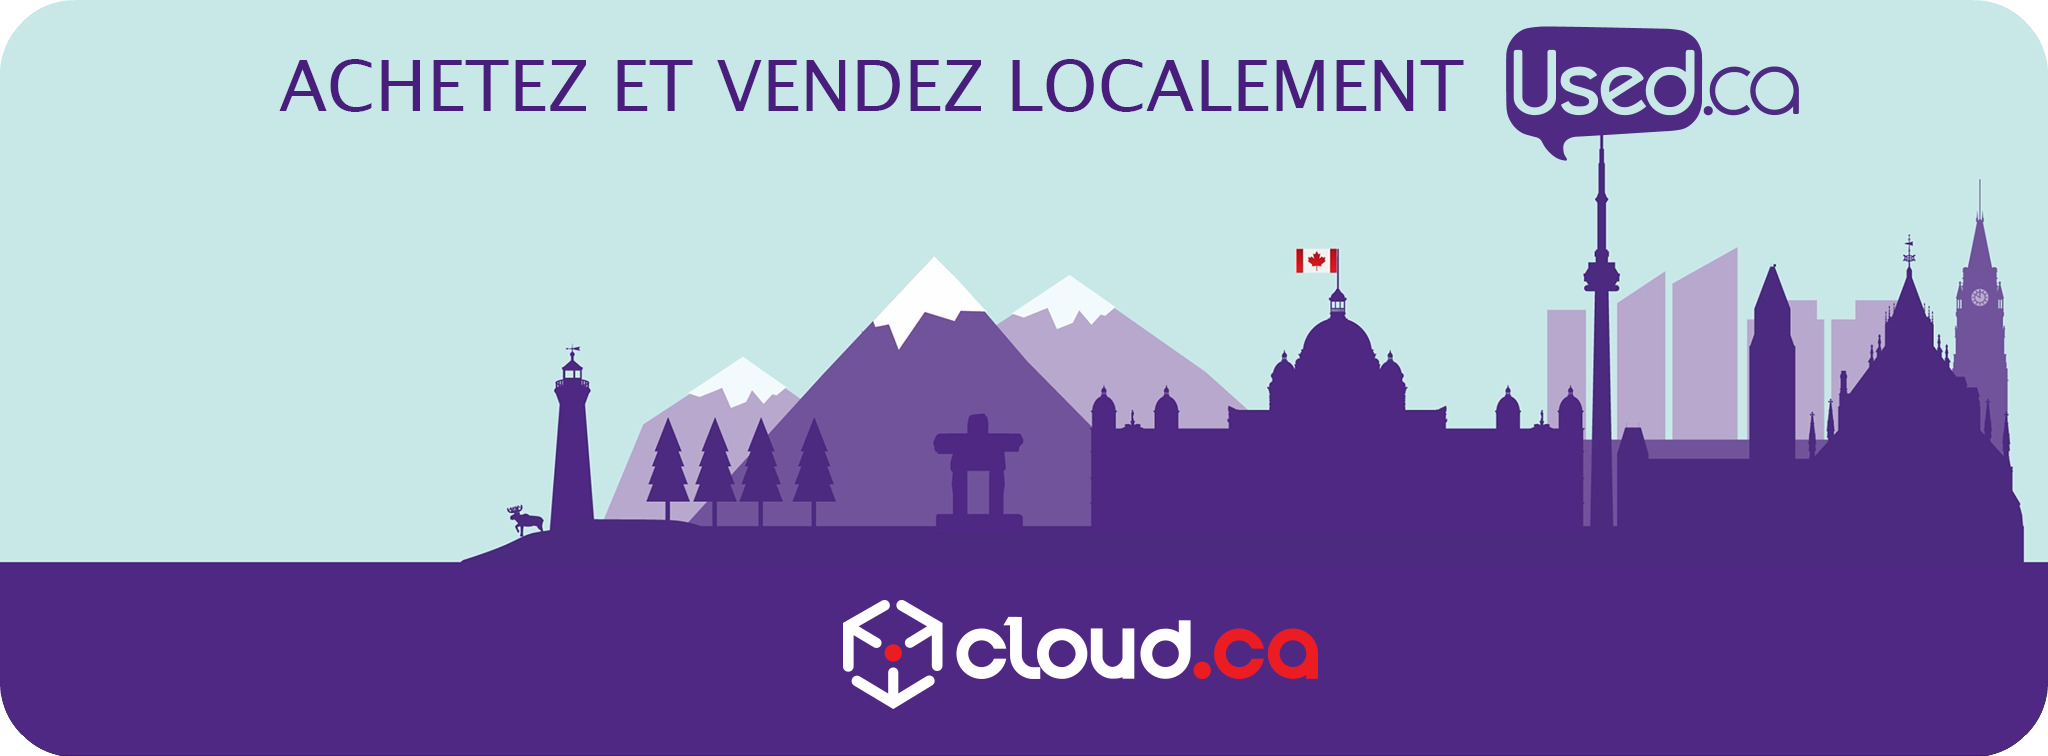 used.ca cloud.ca skyline logos 3 fr.png